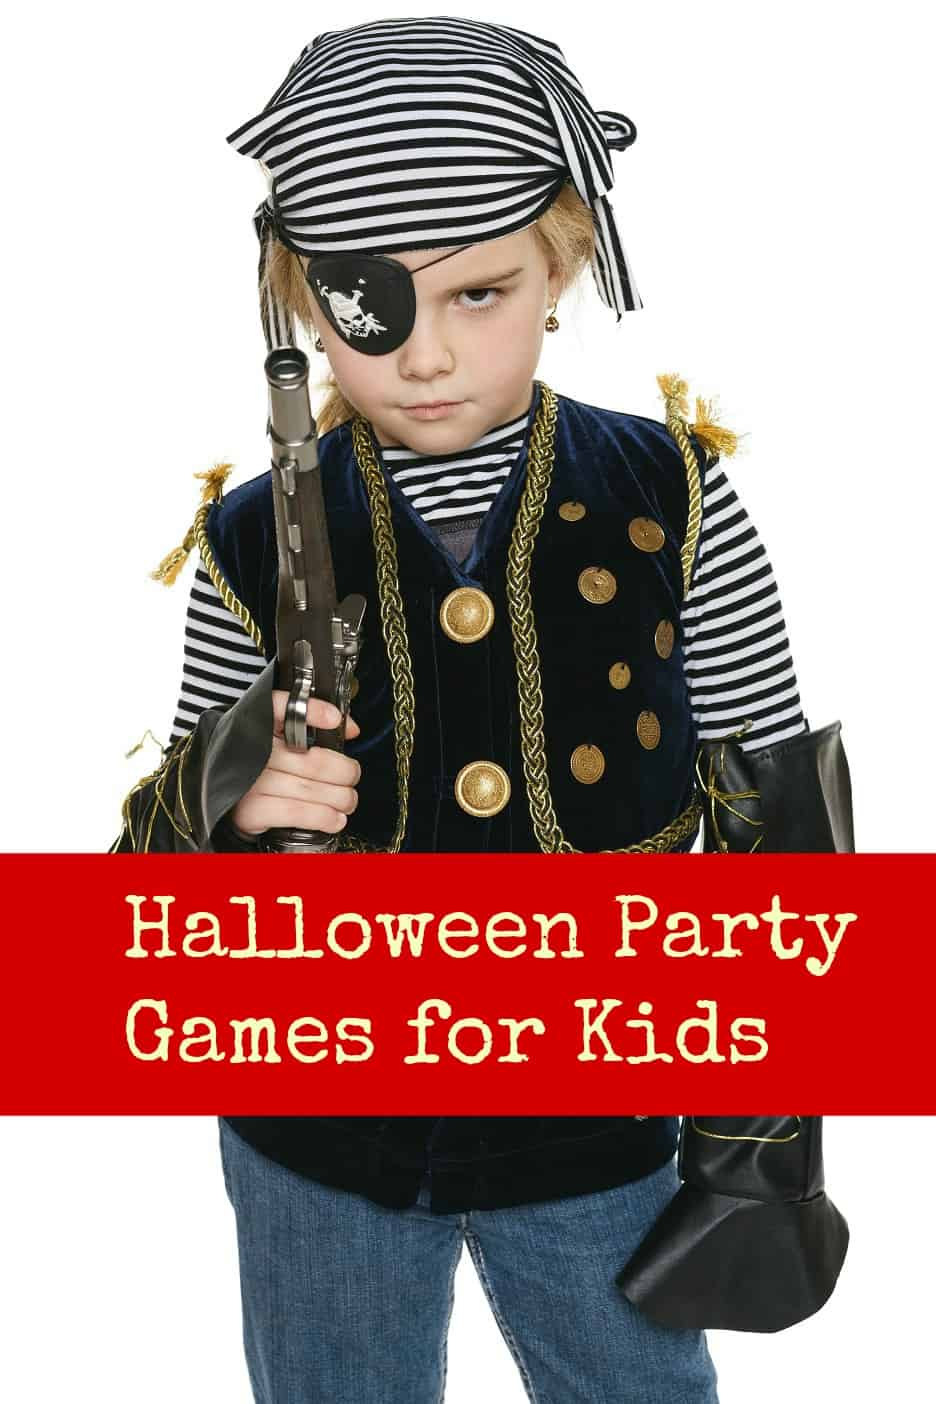 Halloween Party Games for Kids